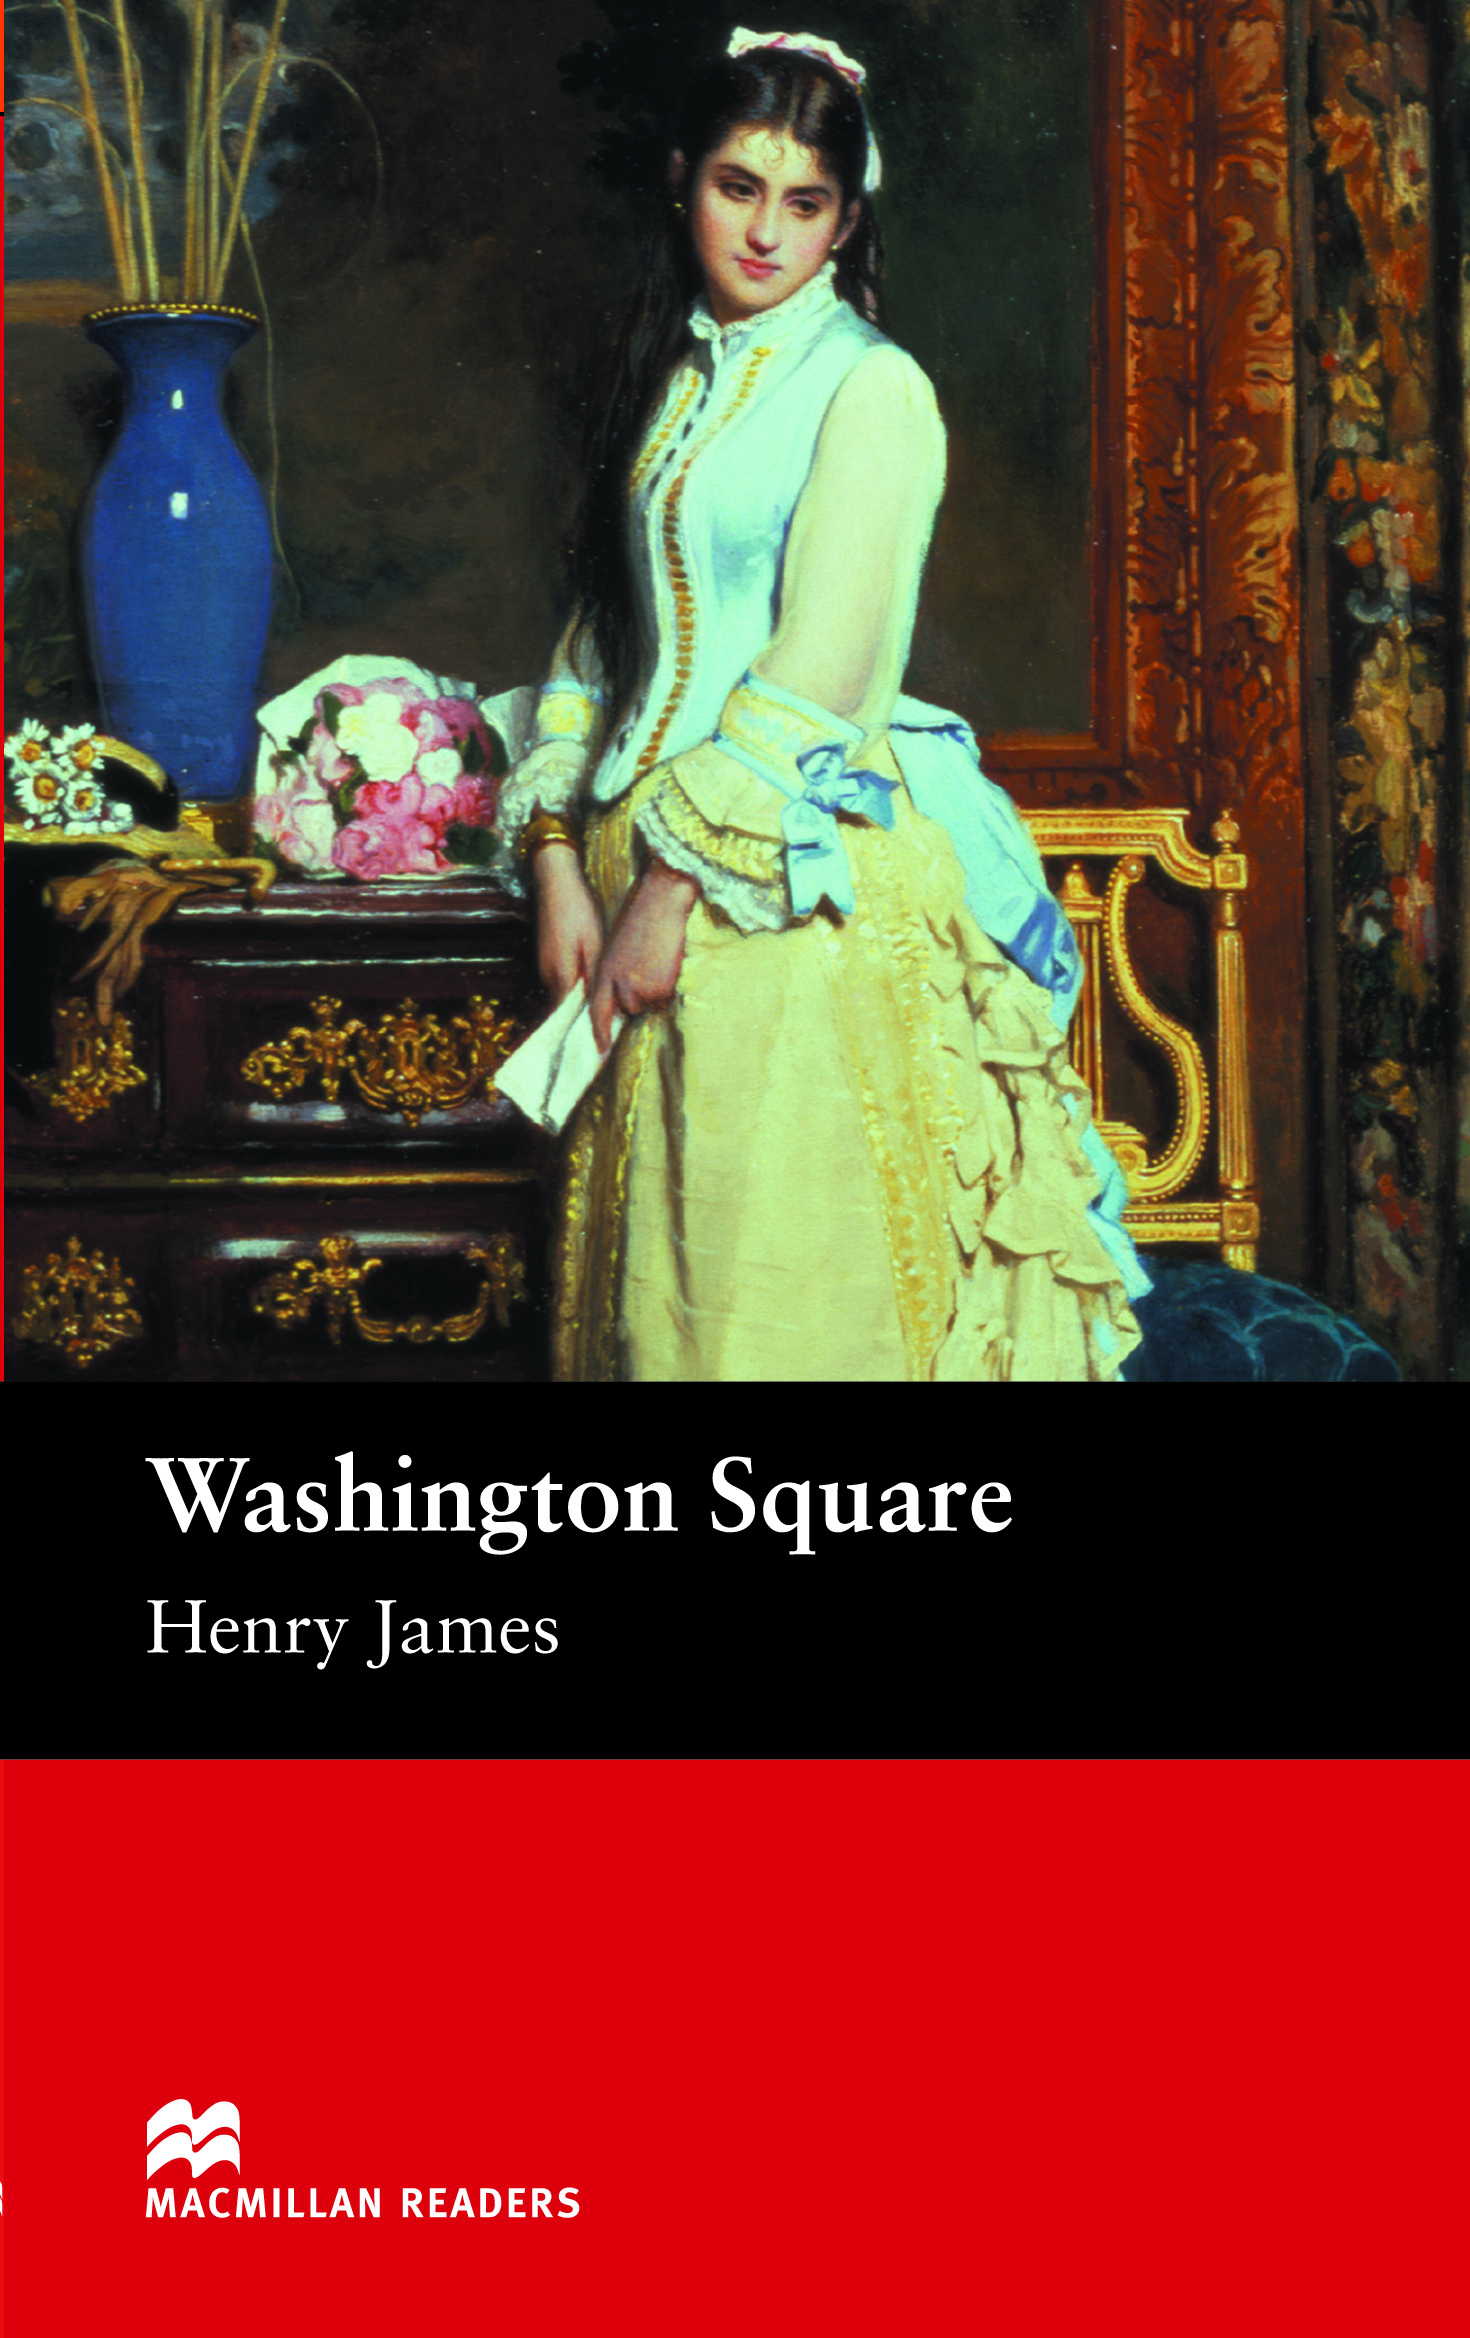 Macmillan Readers: Washington Square